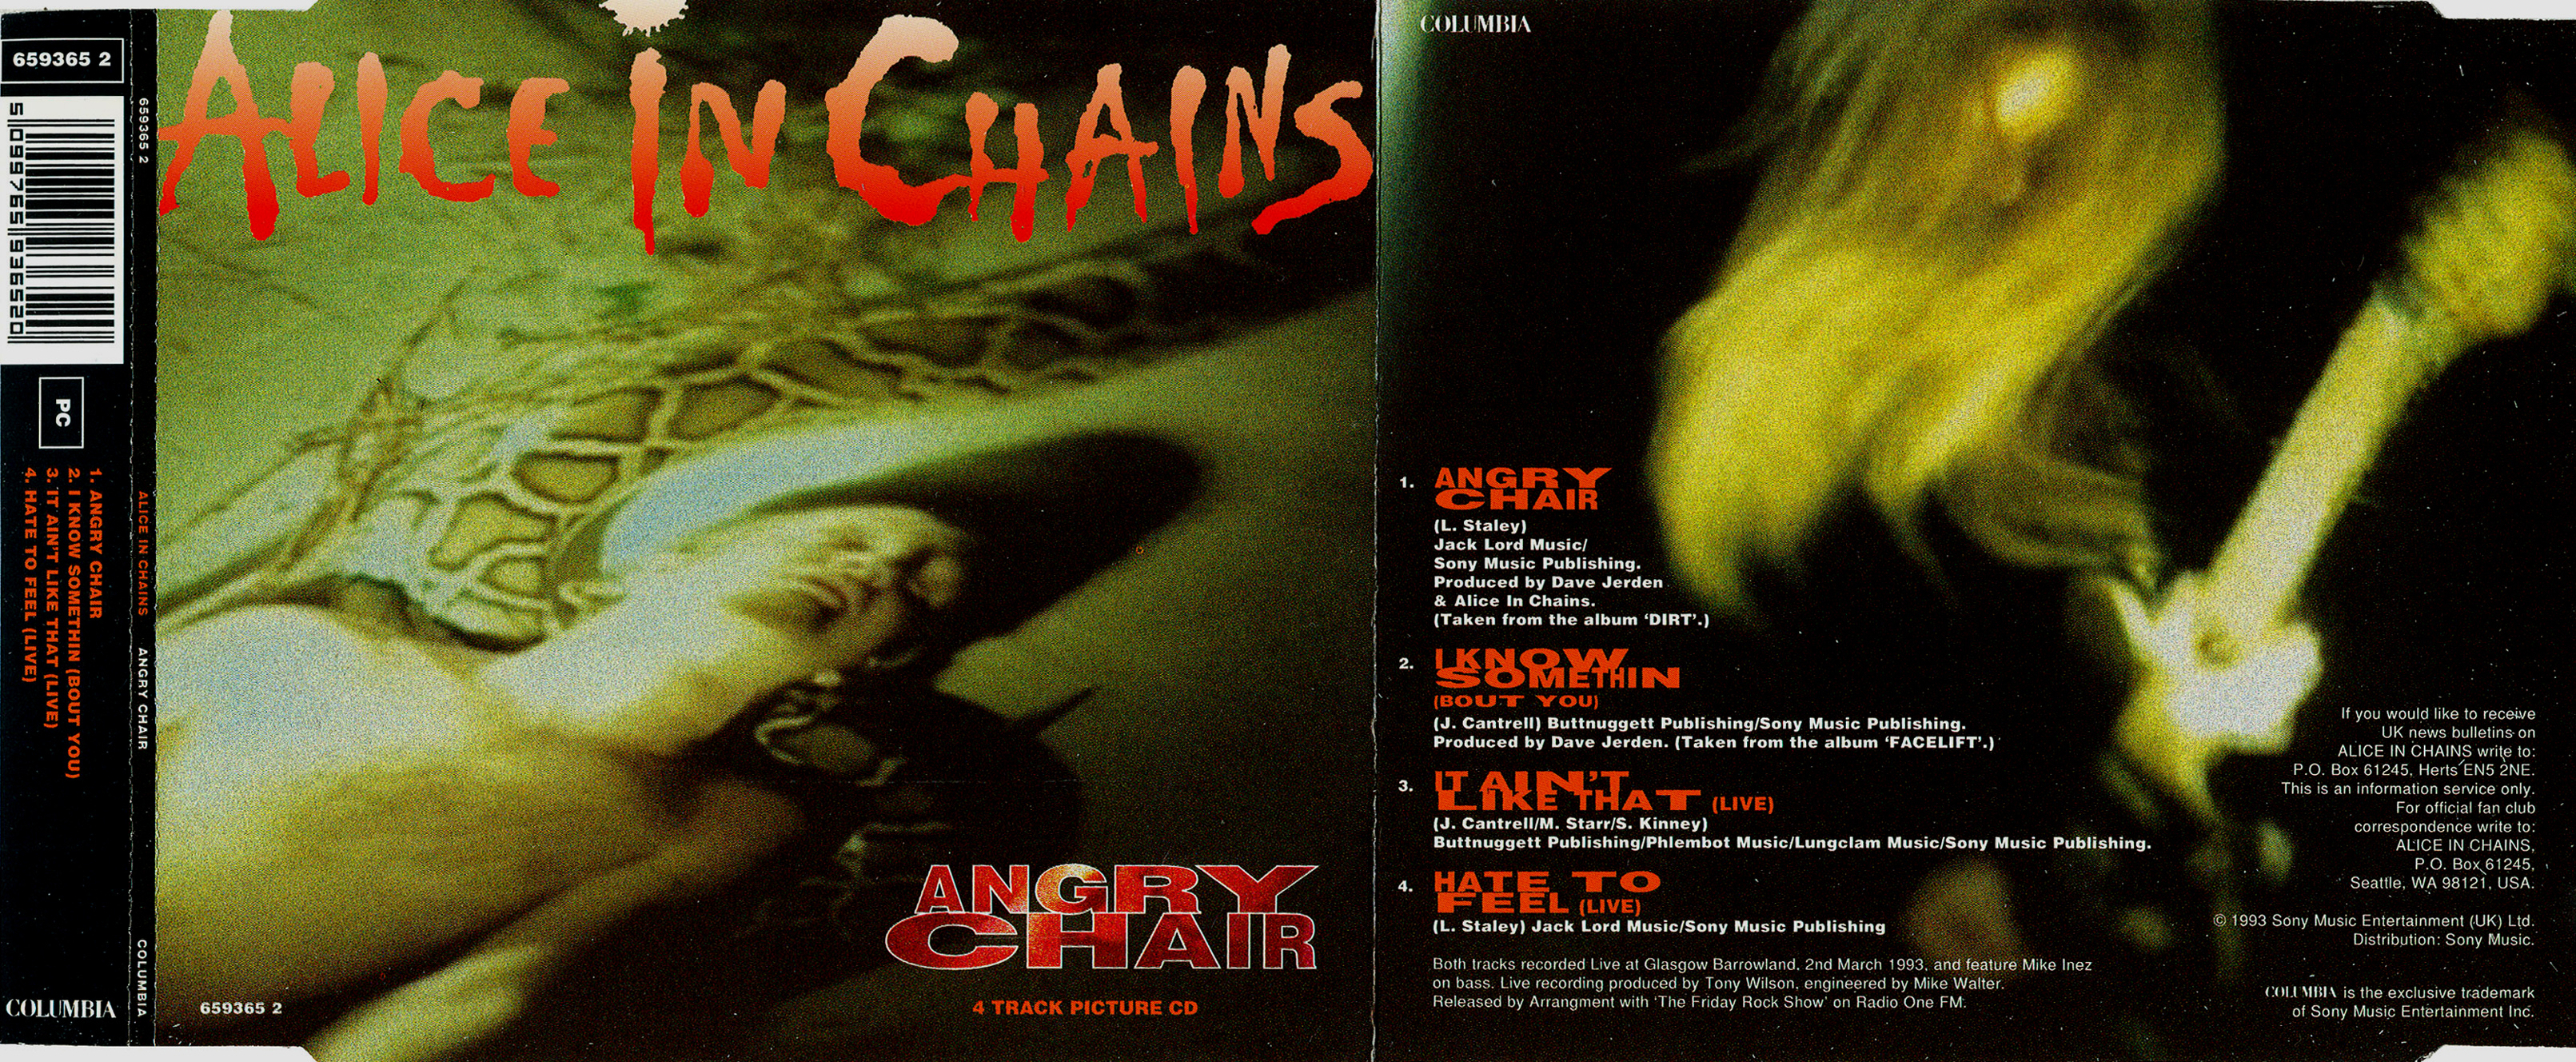 Alice In Chains - Angry Chair - Booklet